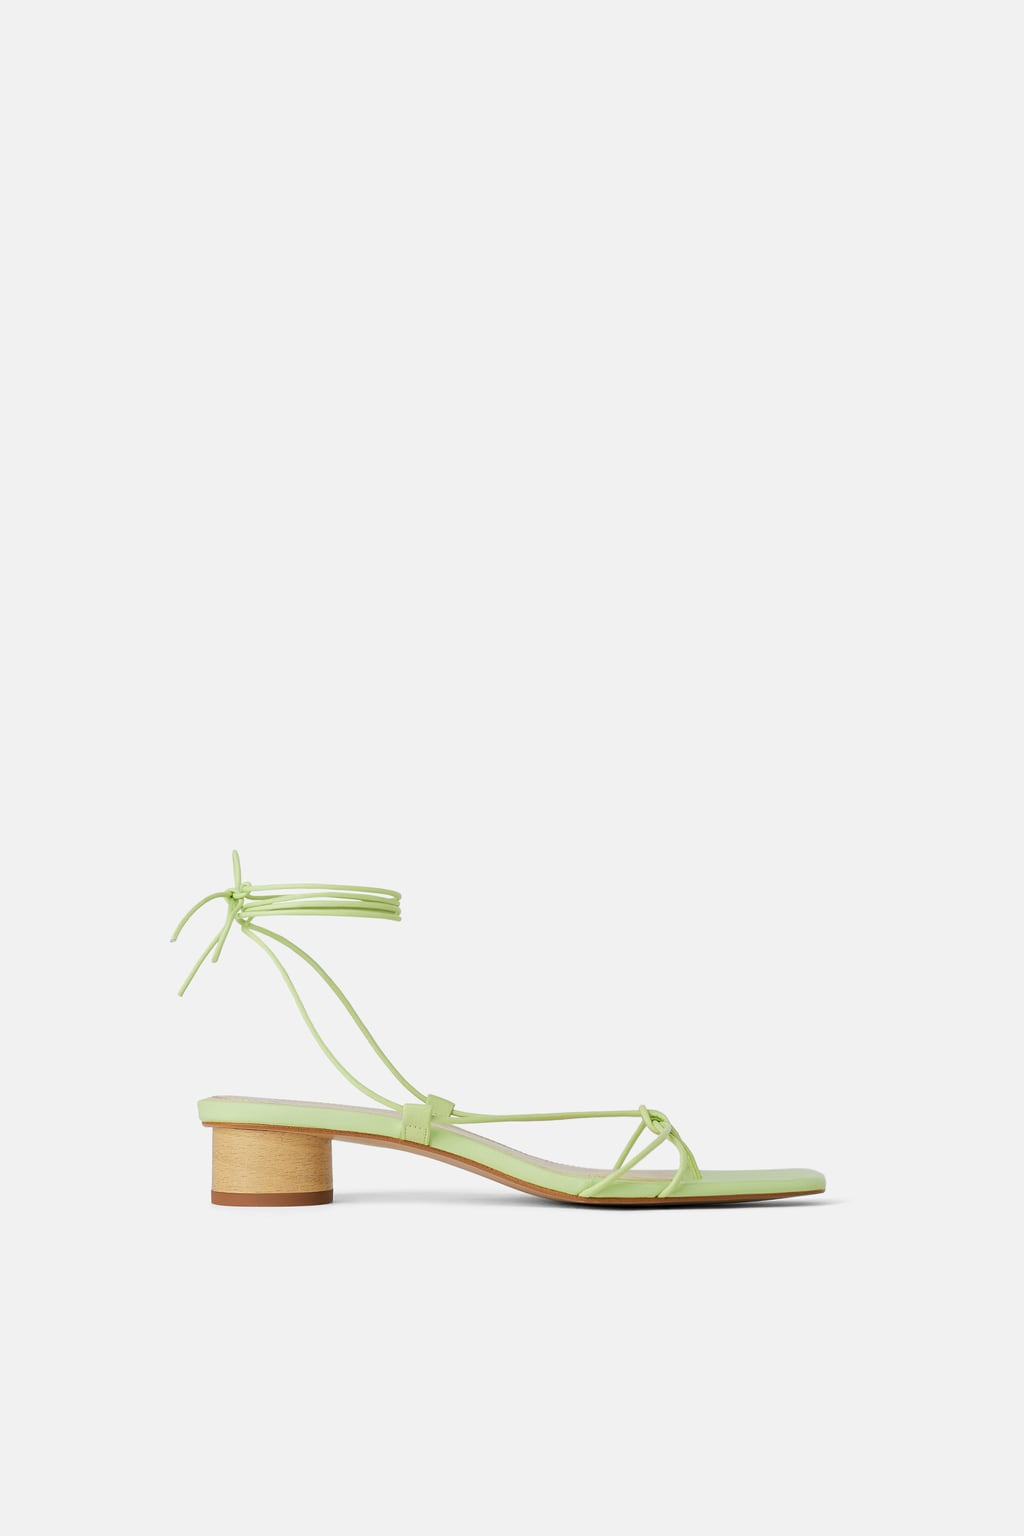 Strappy: Heeled Leather Sandals With Thin Straps, $80, zara.com